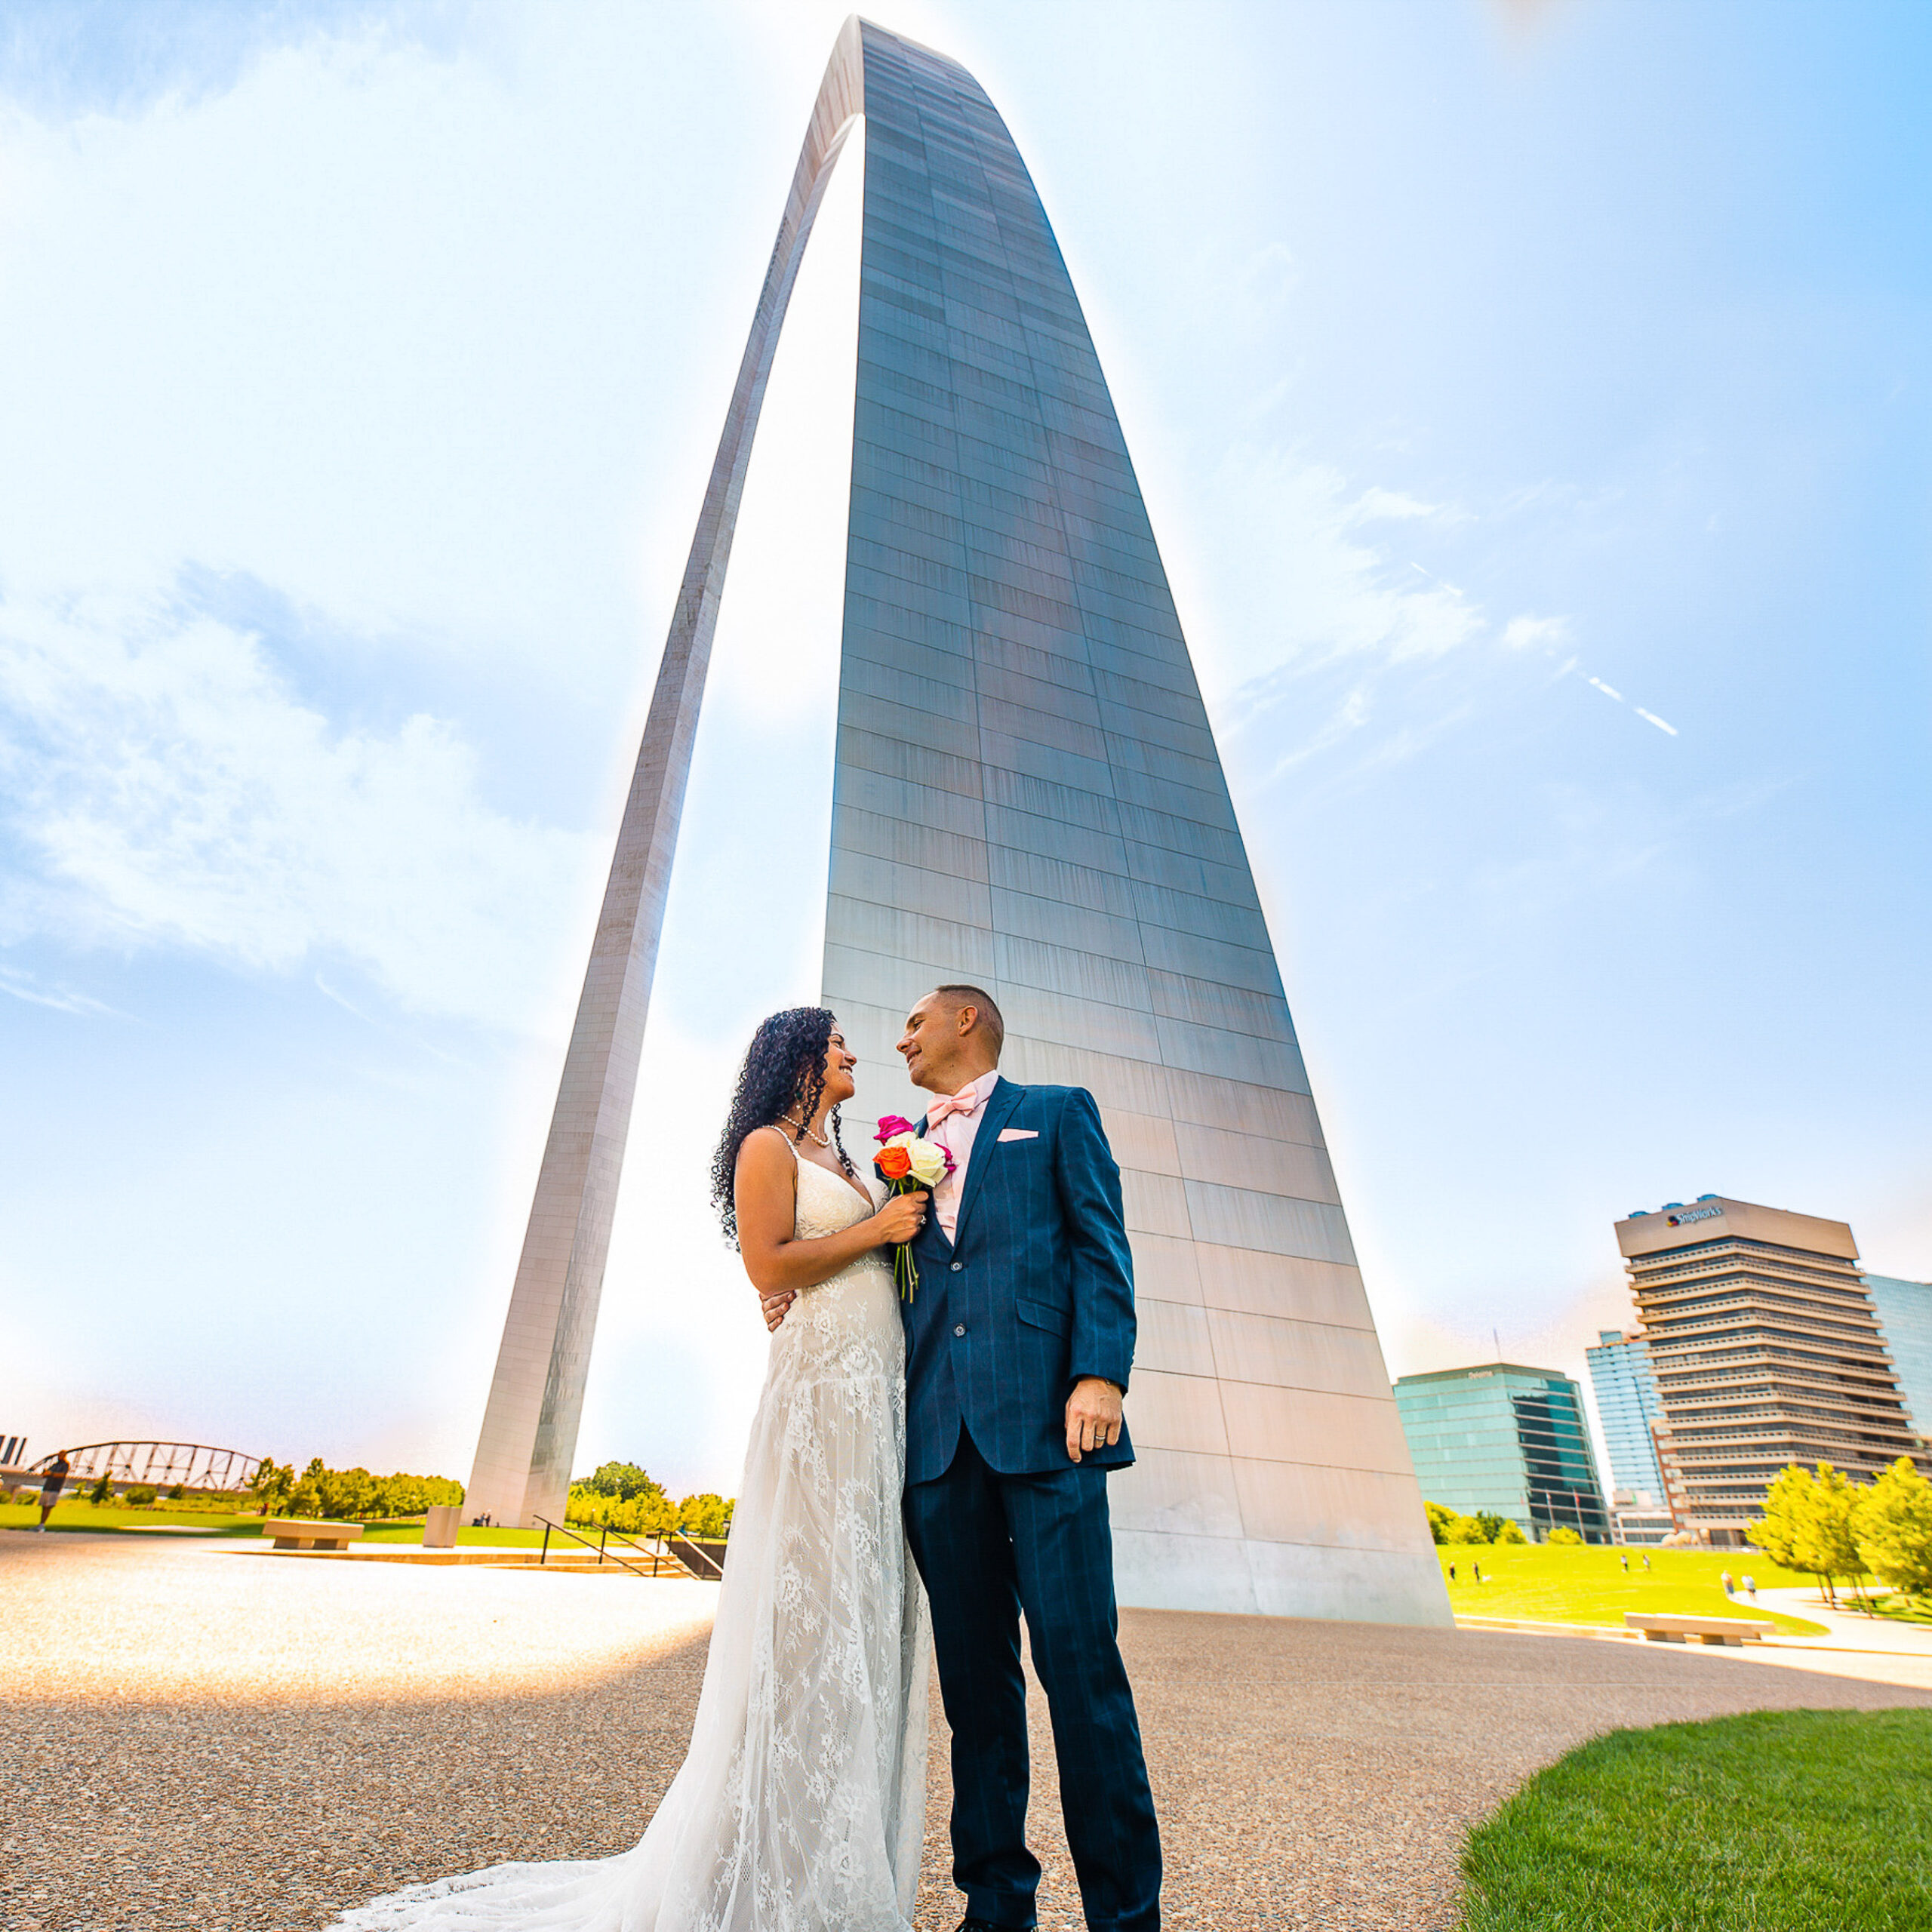 Link into greater St Louis wedding photography gallery: Nicole & Daniel